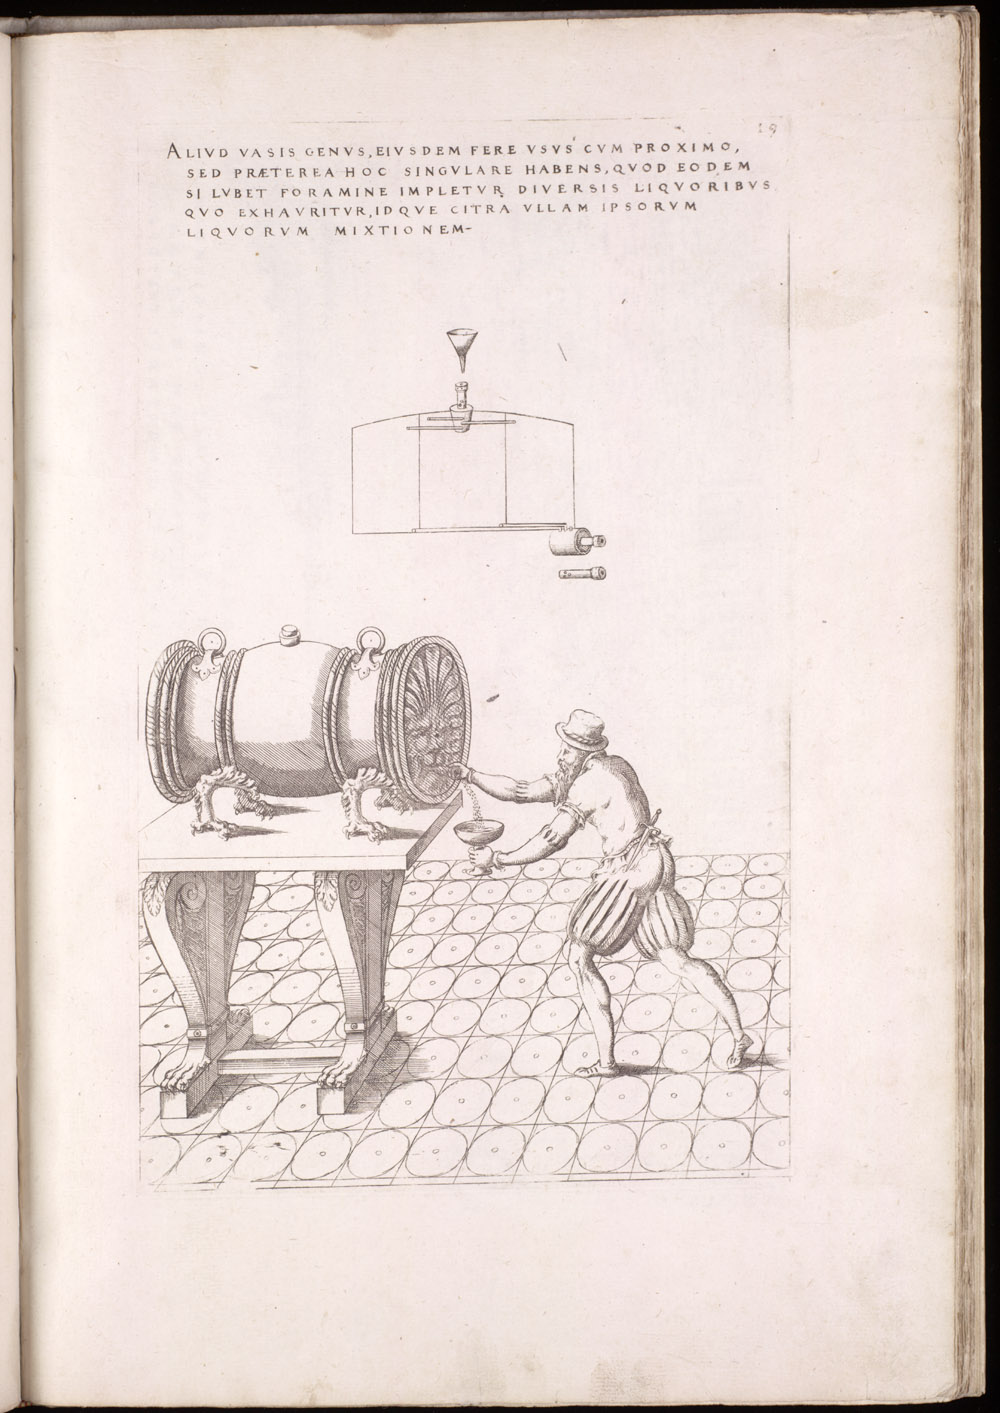 Plate 19 [Multi-liquid barrel and spigot],  Image number:SIL4-2-71a